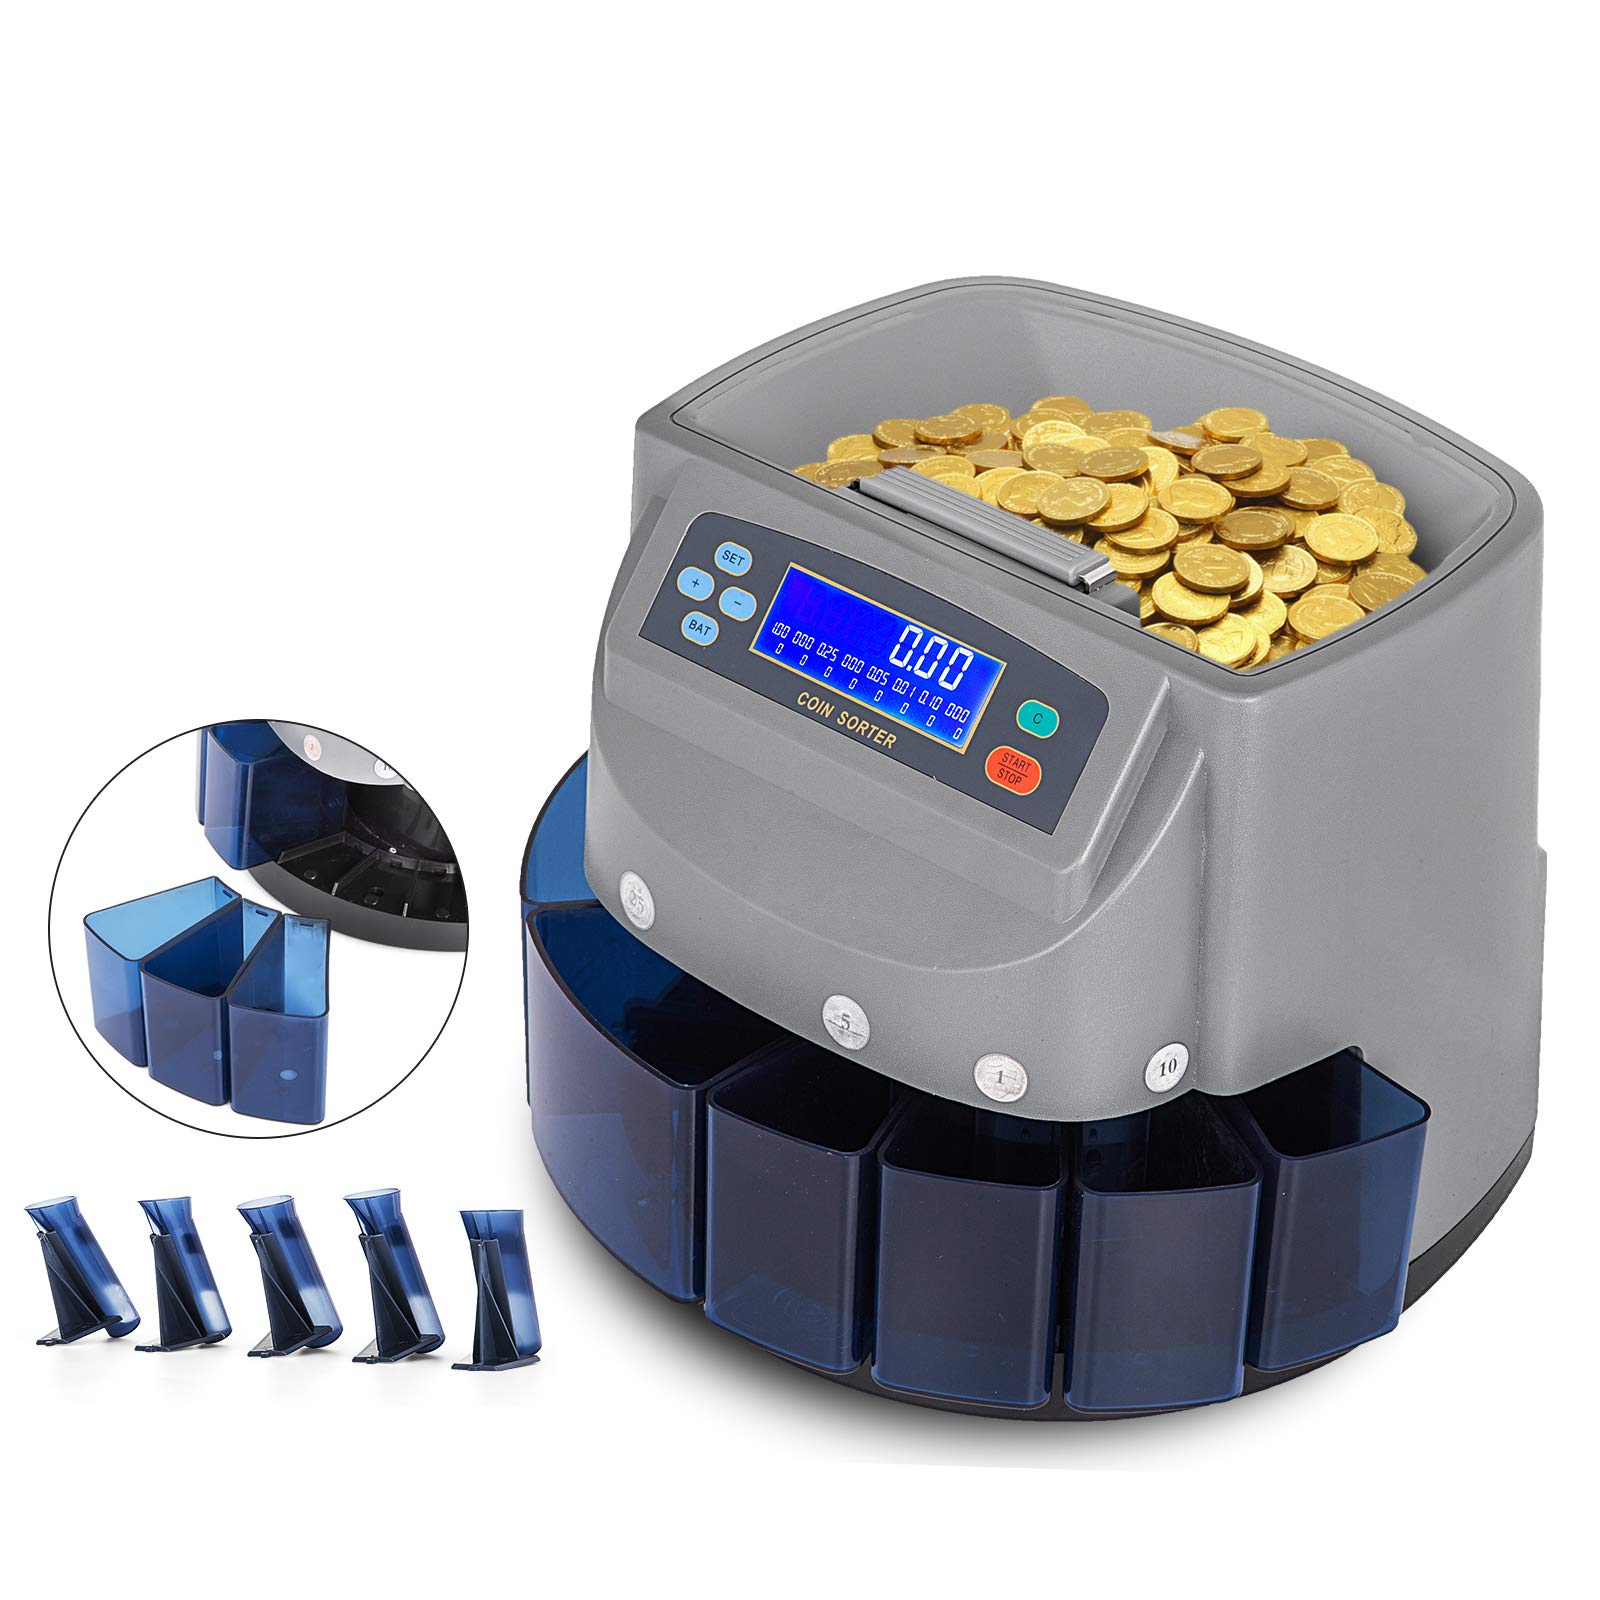 VEVOR Coin Counter 270 Coins/Min Coin Sorter LCD Display Screen Coin Counter Machine US Automatic Coin Counter Displays Total Value(270 Coins/Min,LCD) by VEVOR